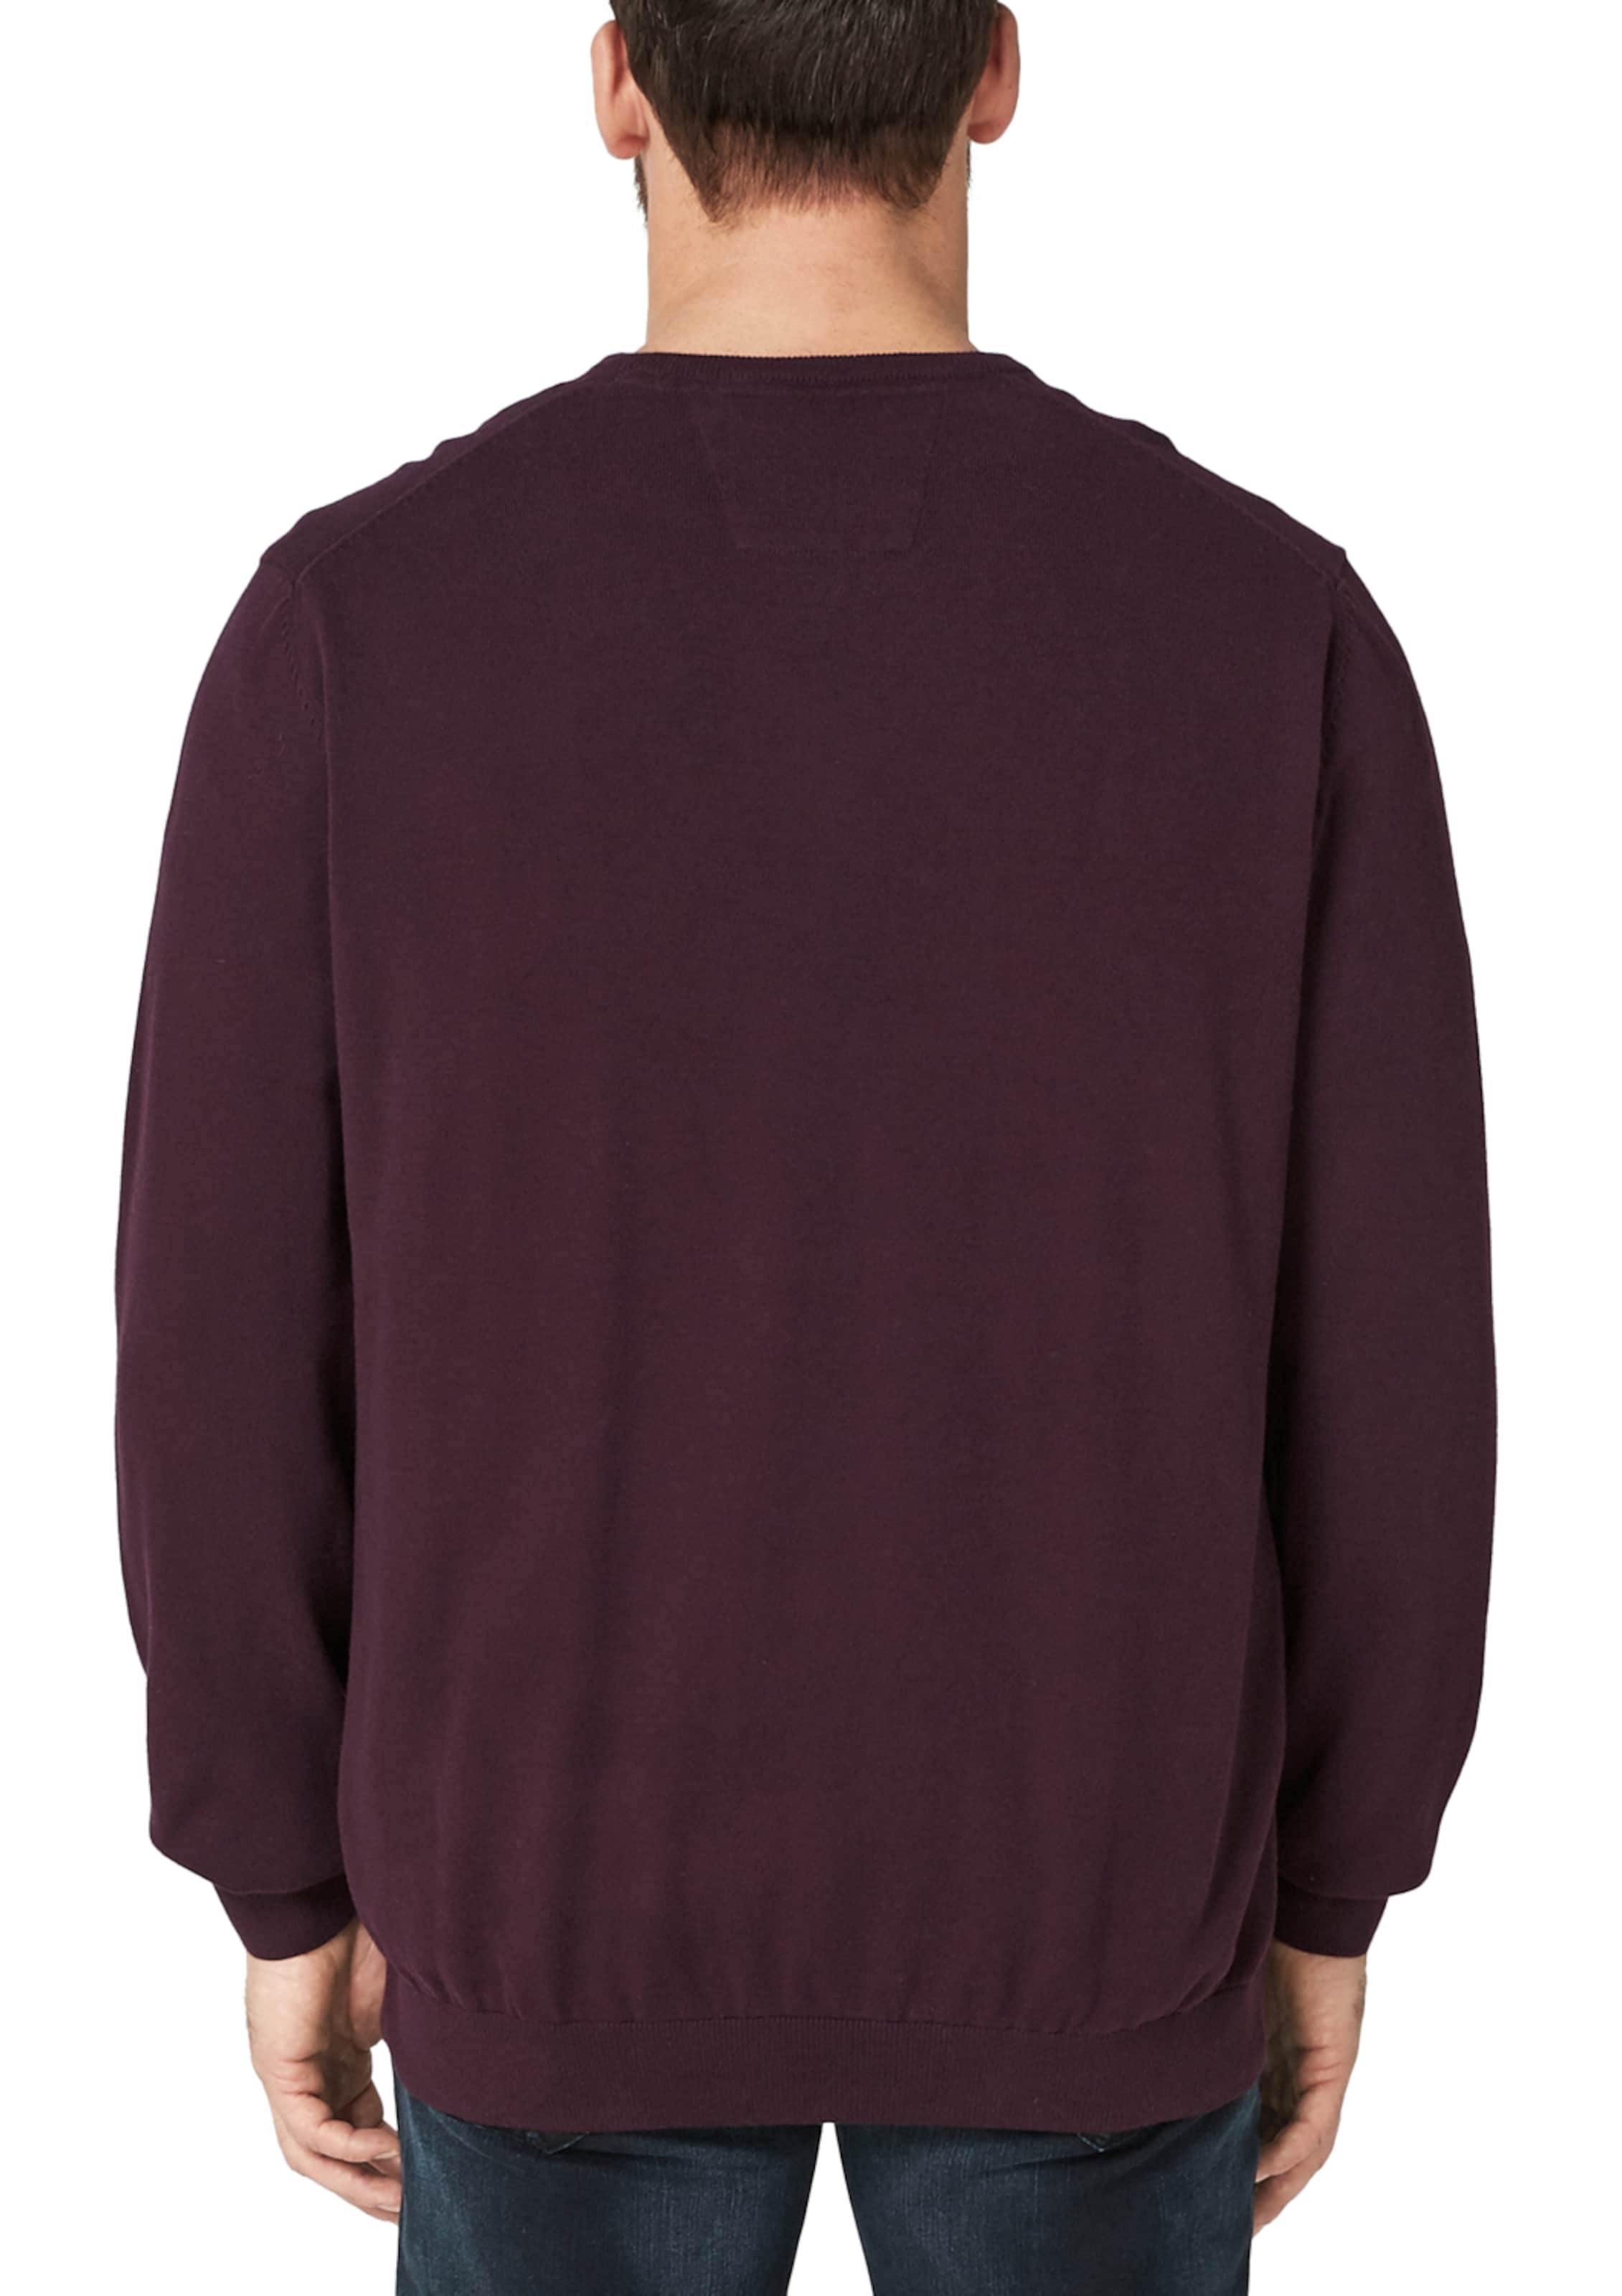 S Red Pullover In Label Weinrot oliver strdhQCx